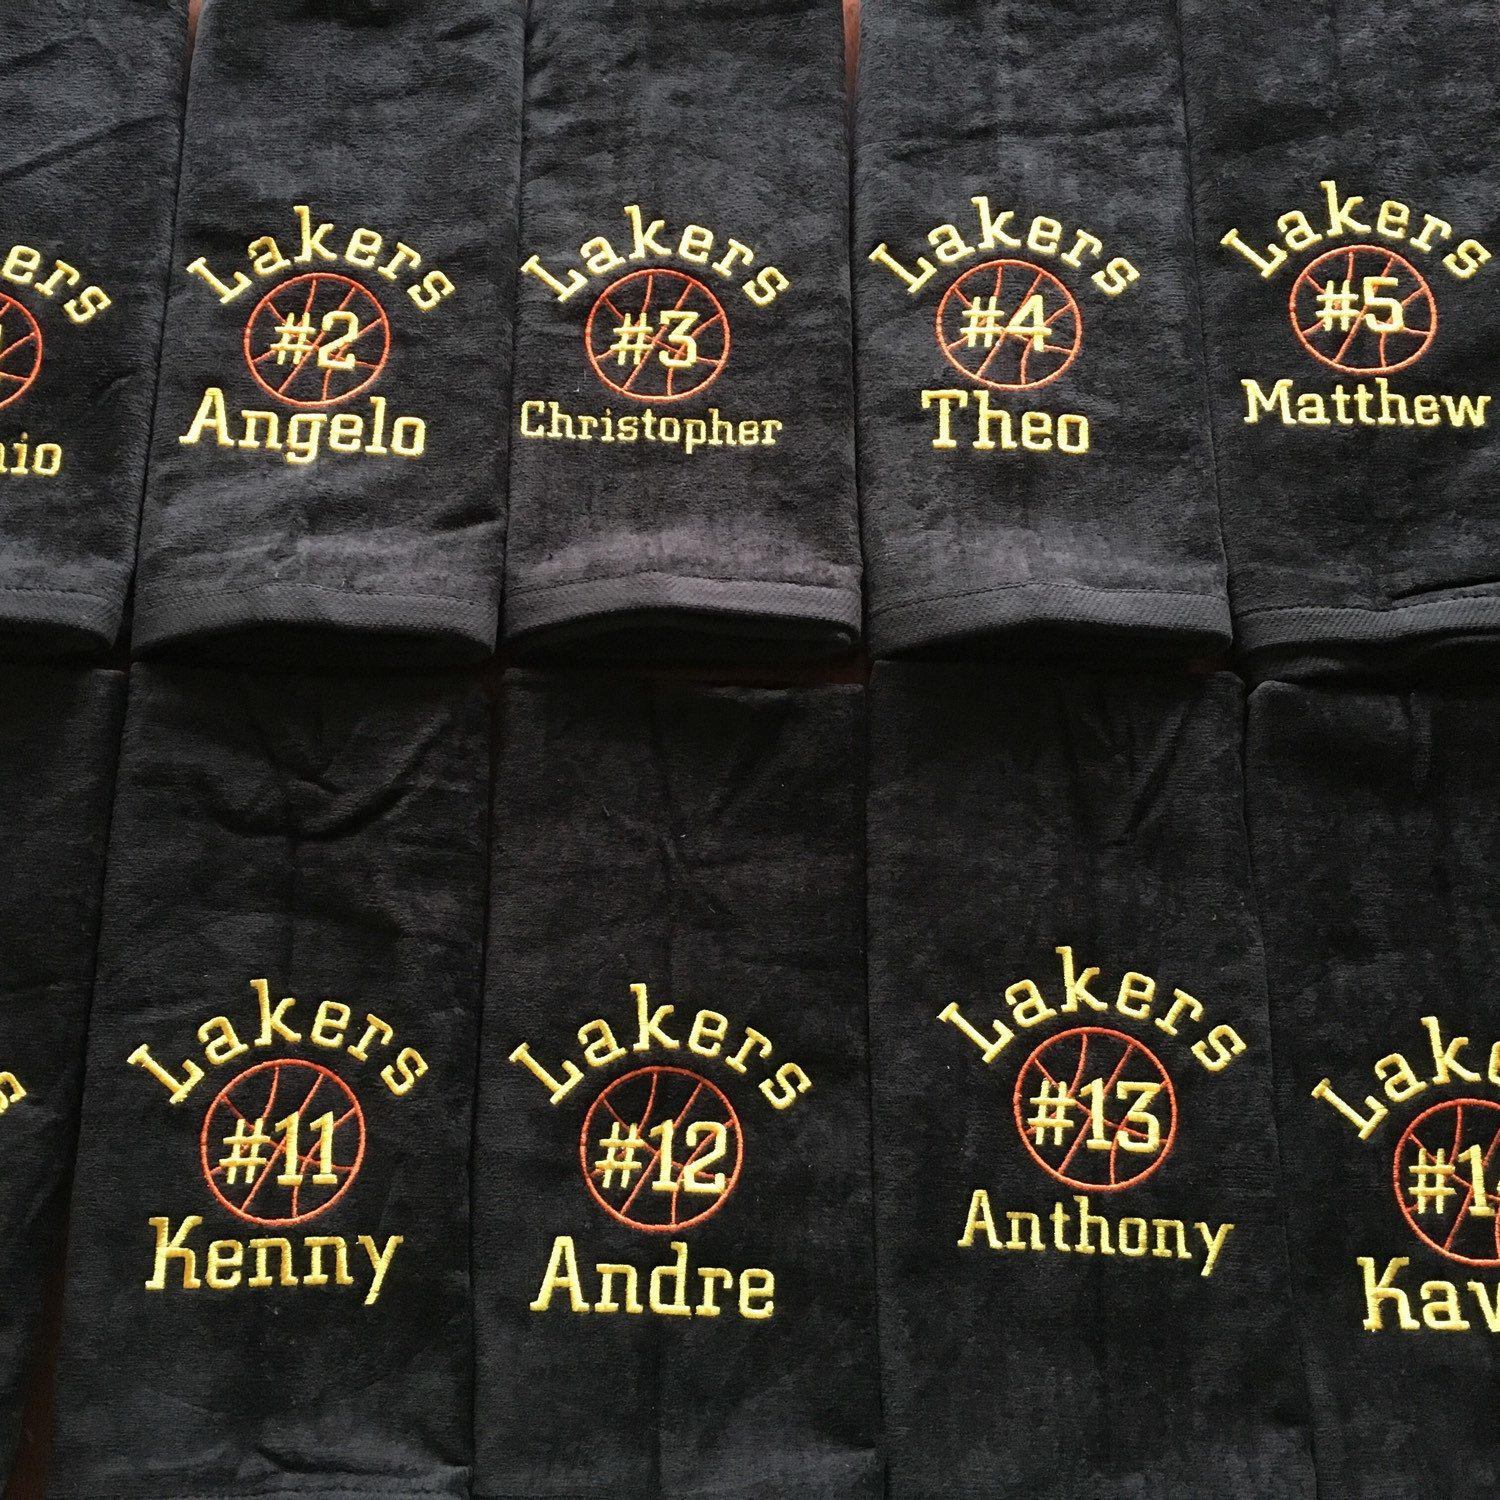 641b69b465 Personalized basketball towels. Great team gift. | Basketball towels ...